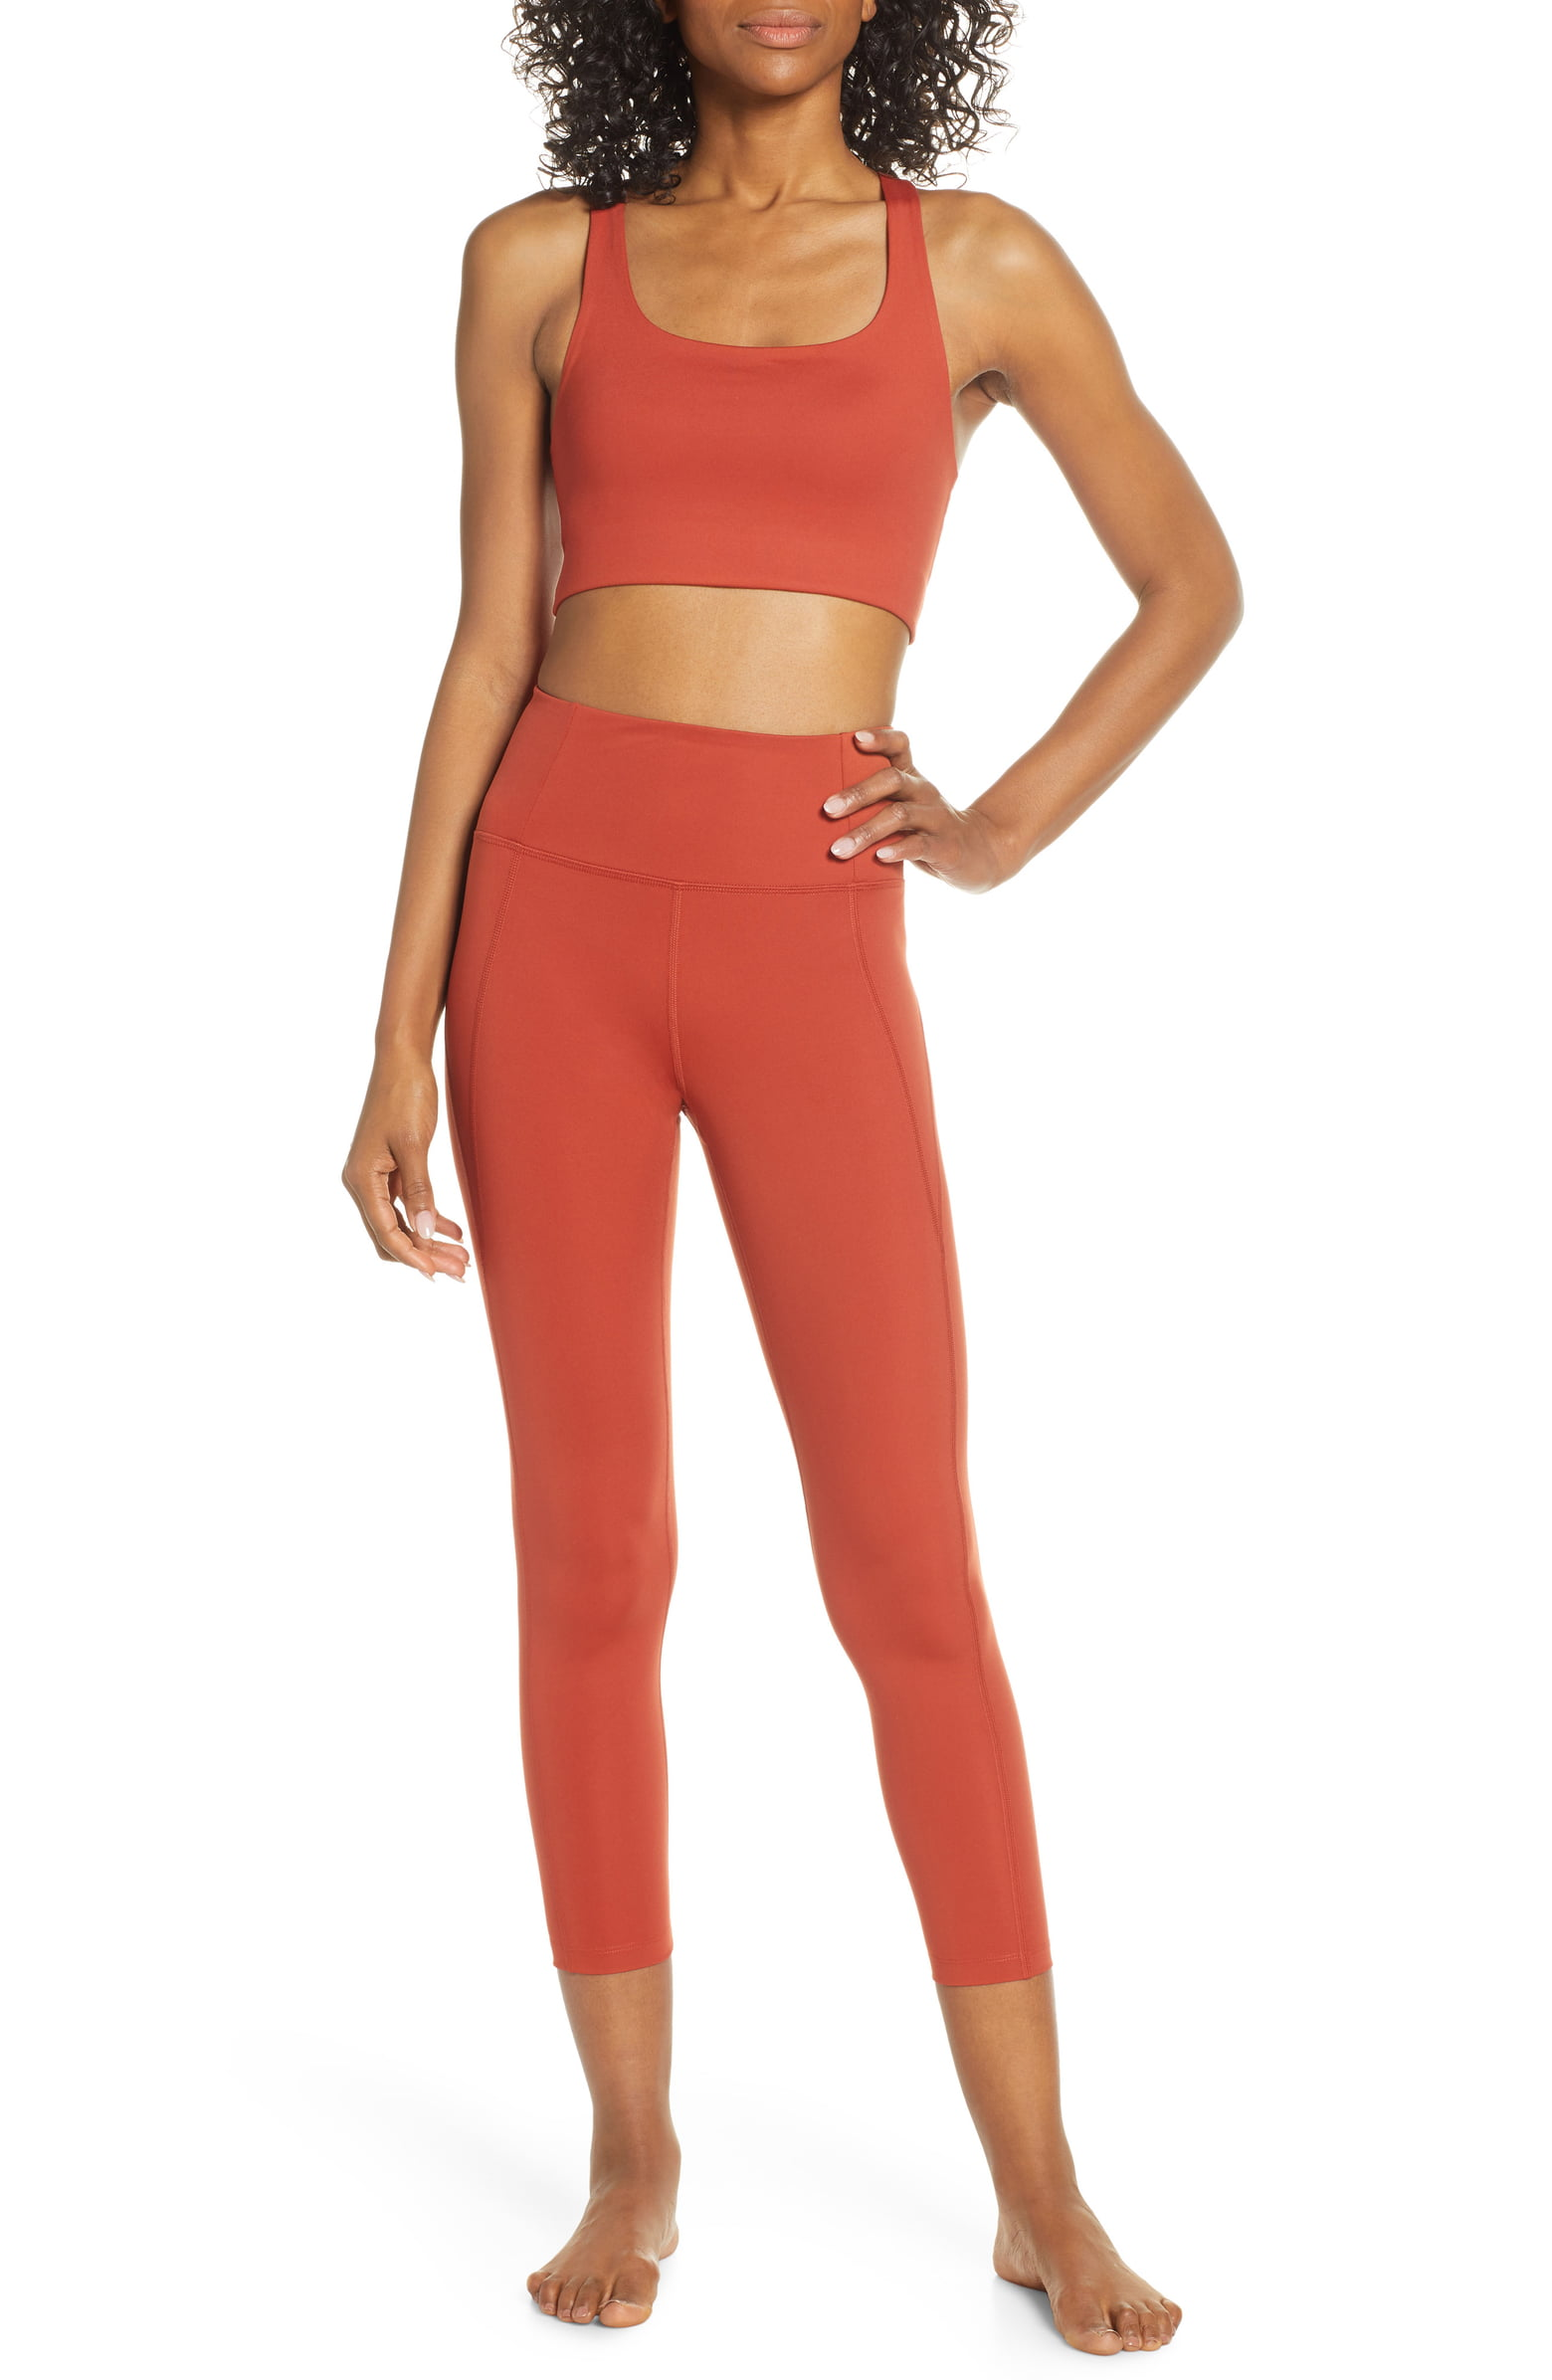 Girlfriend Collective Paloma Bra and High-Rise 7/8 Leggings in Red Ochre